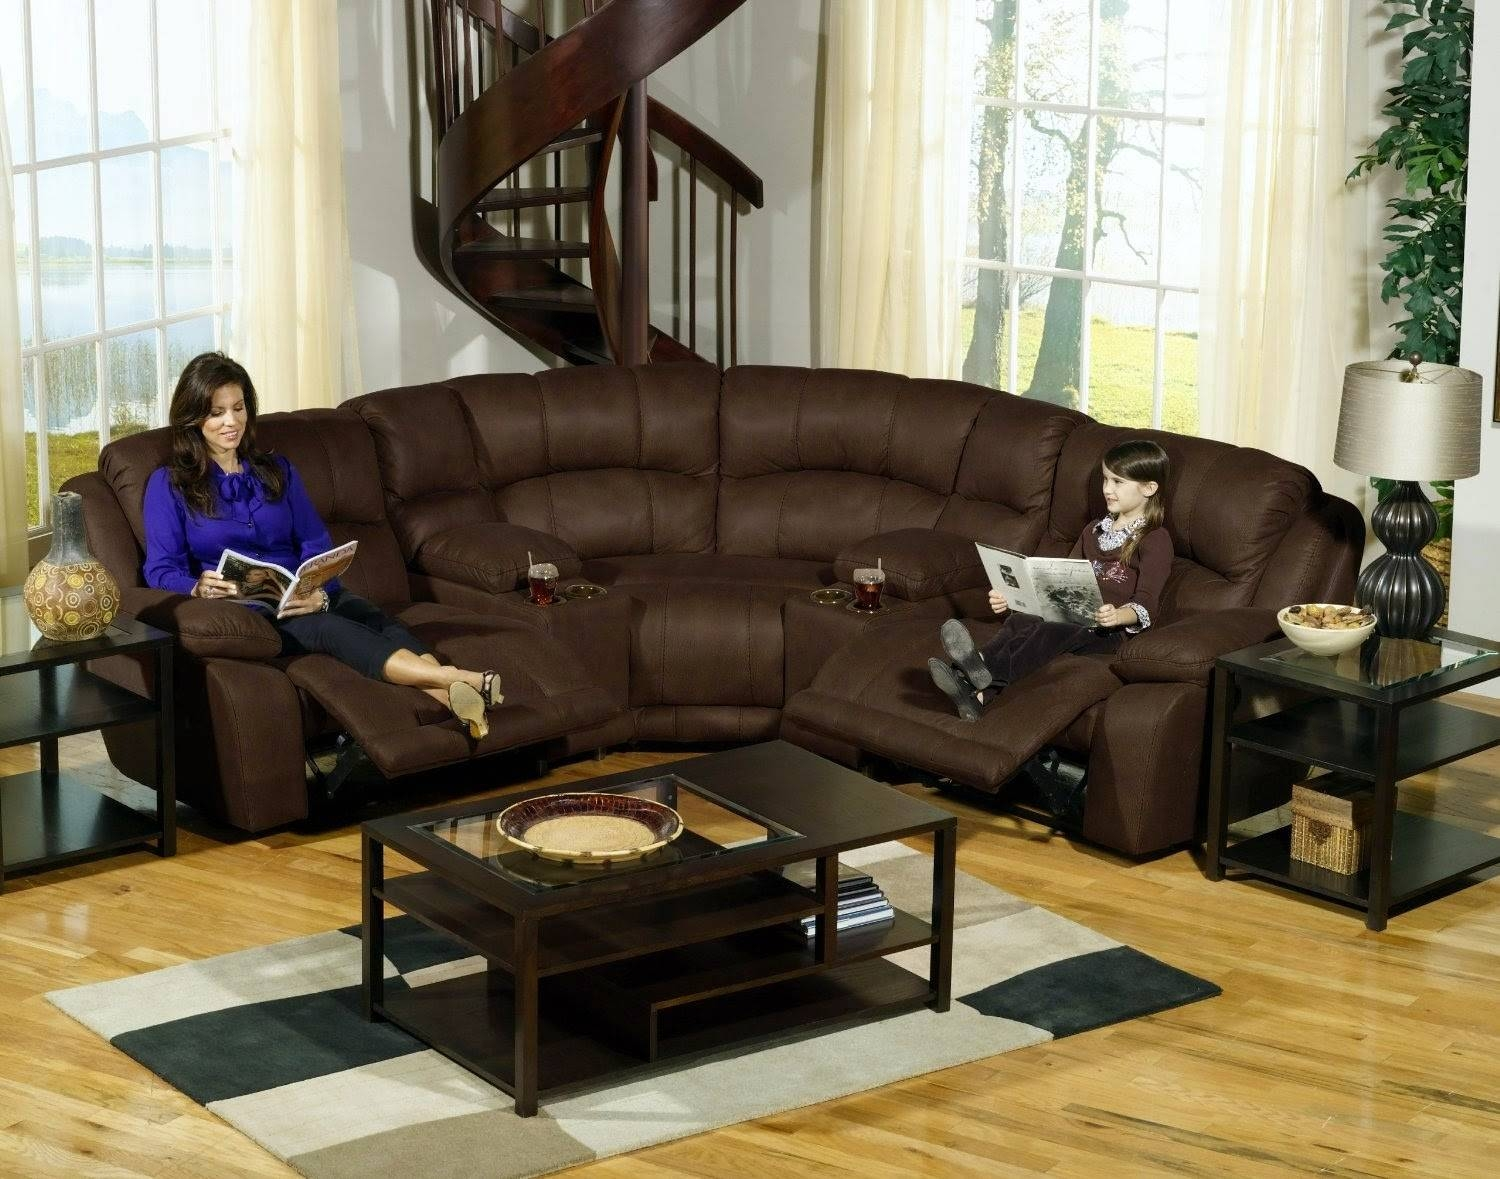 The Most Popular Slipcover For Sectional Sofa With Chaise 67 For regarding Slipcovers for Sectional Sofas With Recliners (Image 30 of 30)